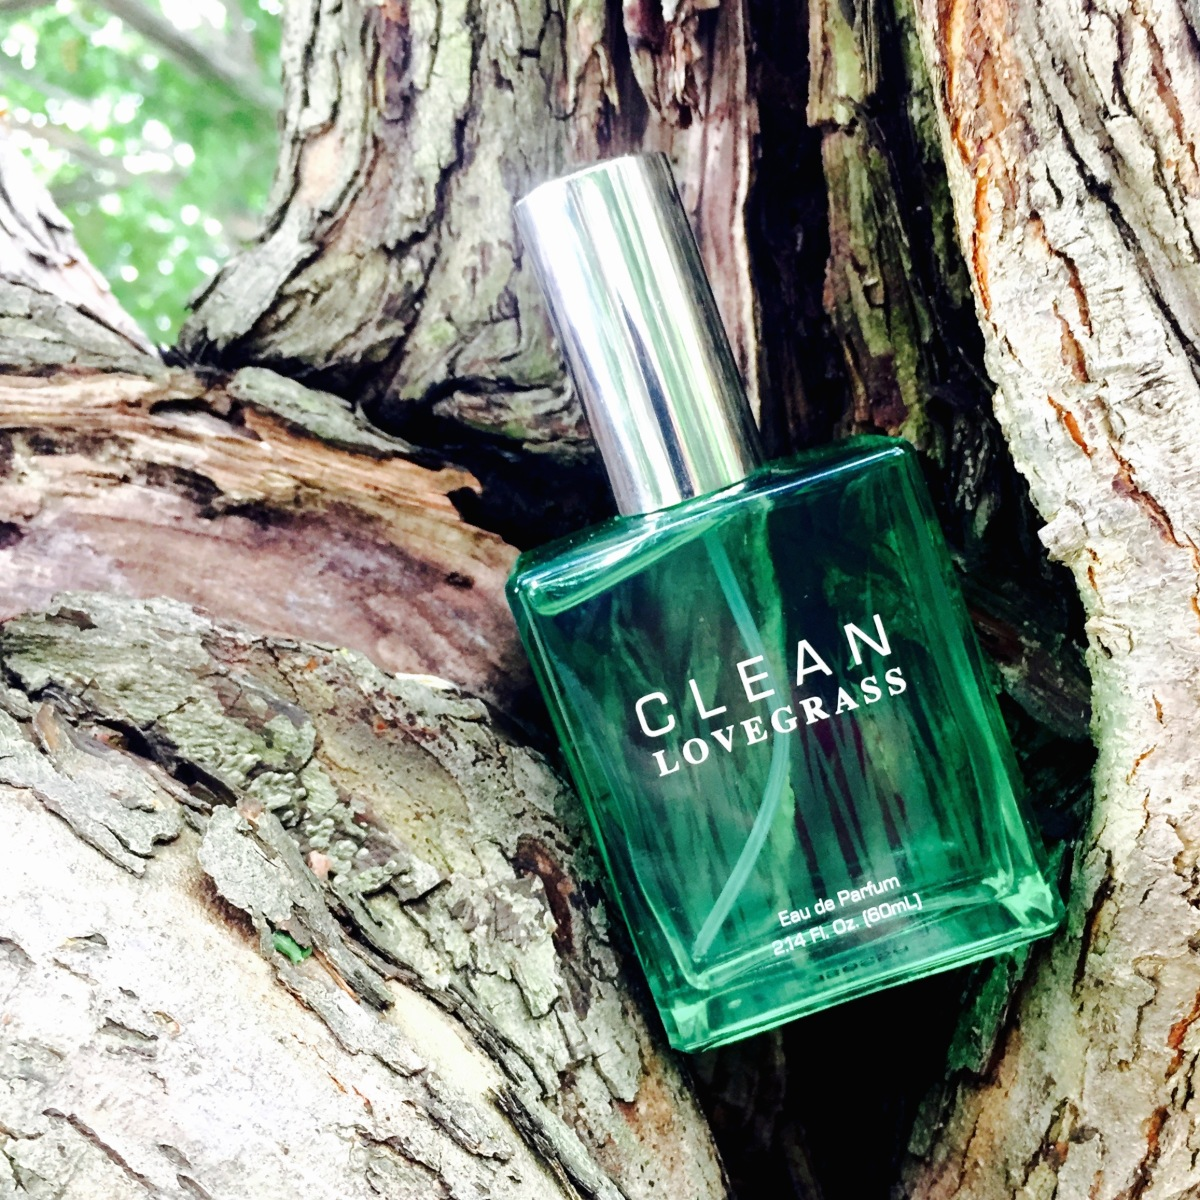 New From CLEAN - Lovegrass - Fragrance